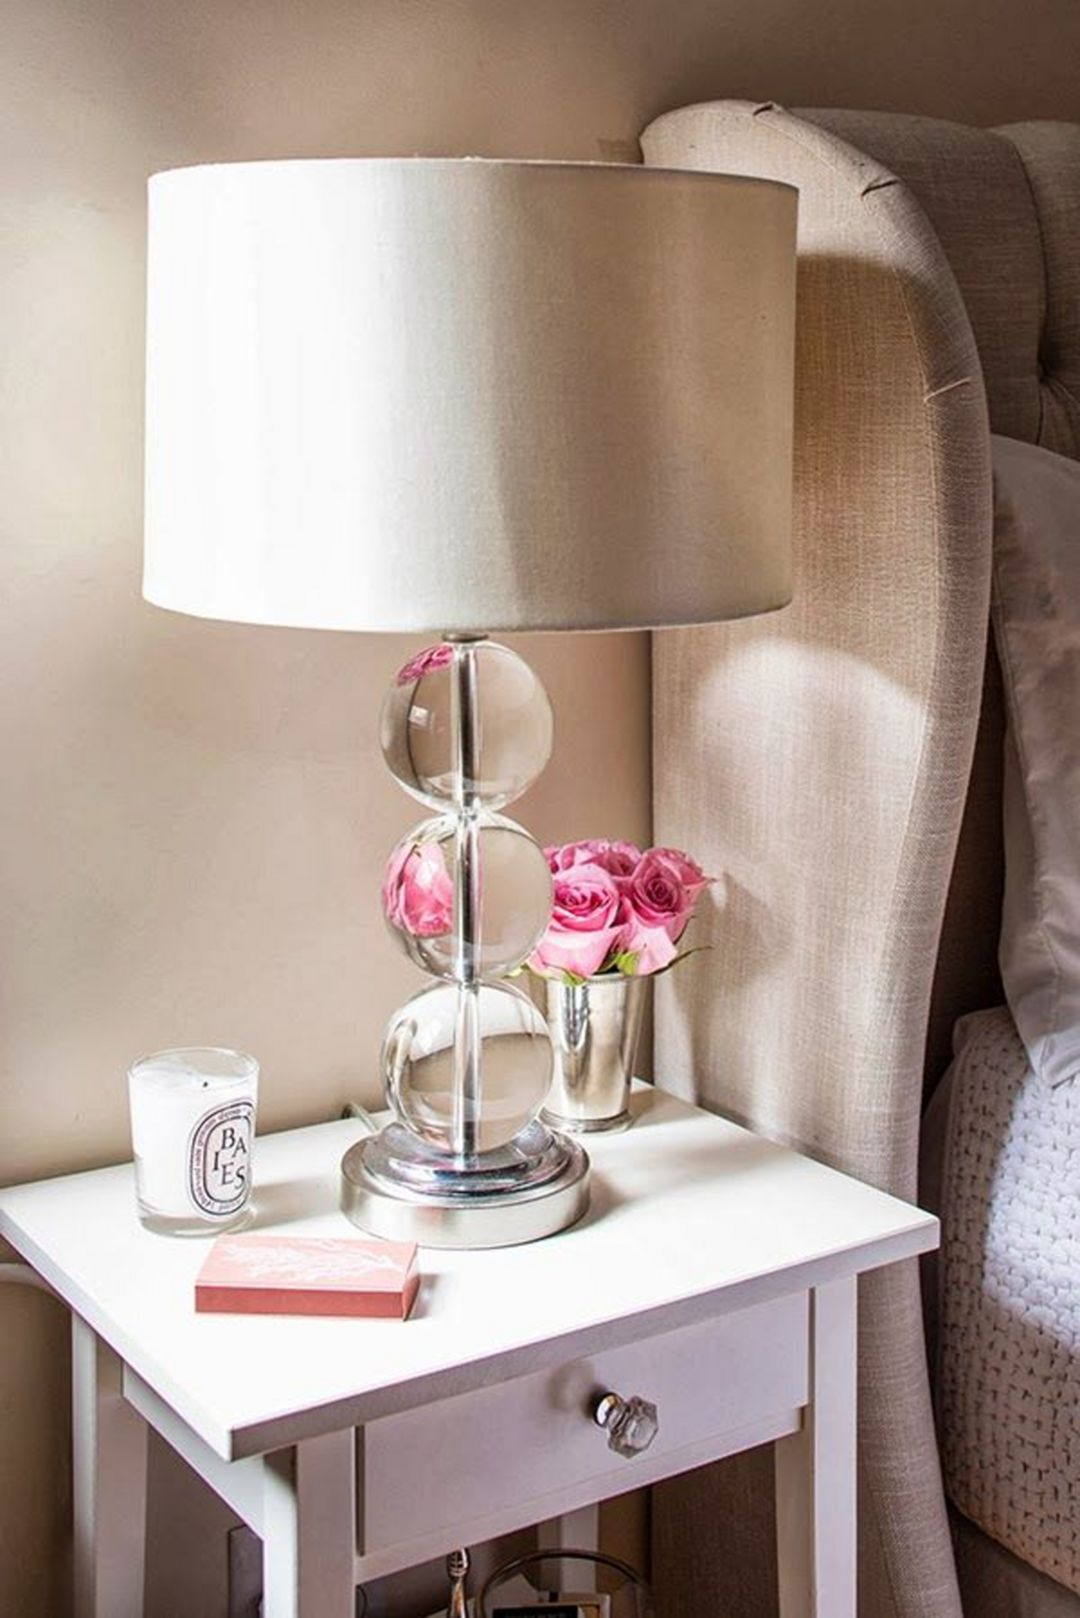 6 Awesome Bedside Table Lamps Ideas to Light Up Your Sleeping